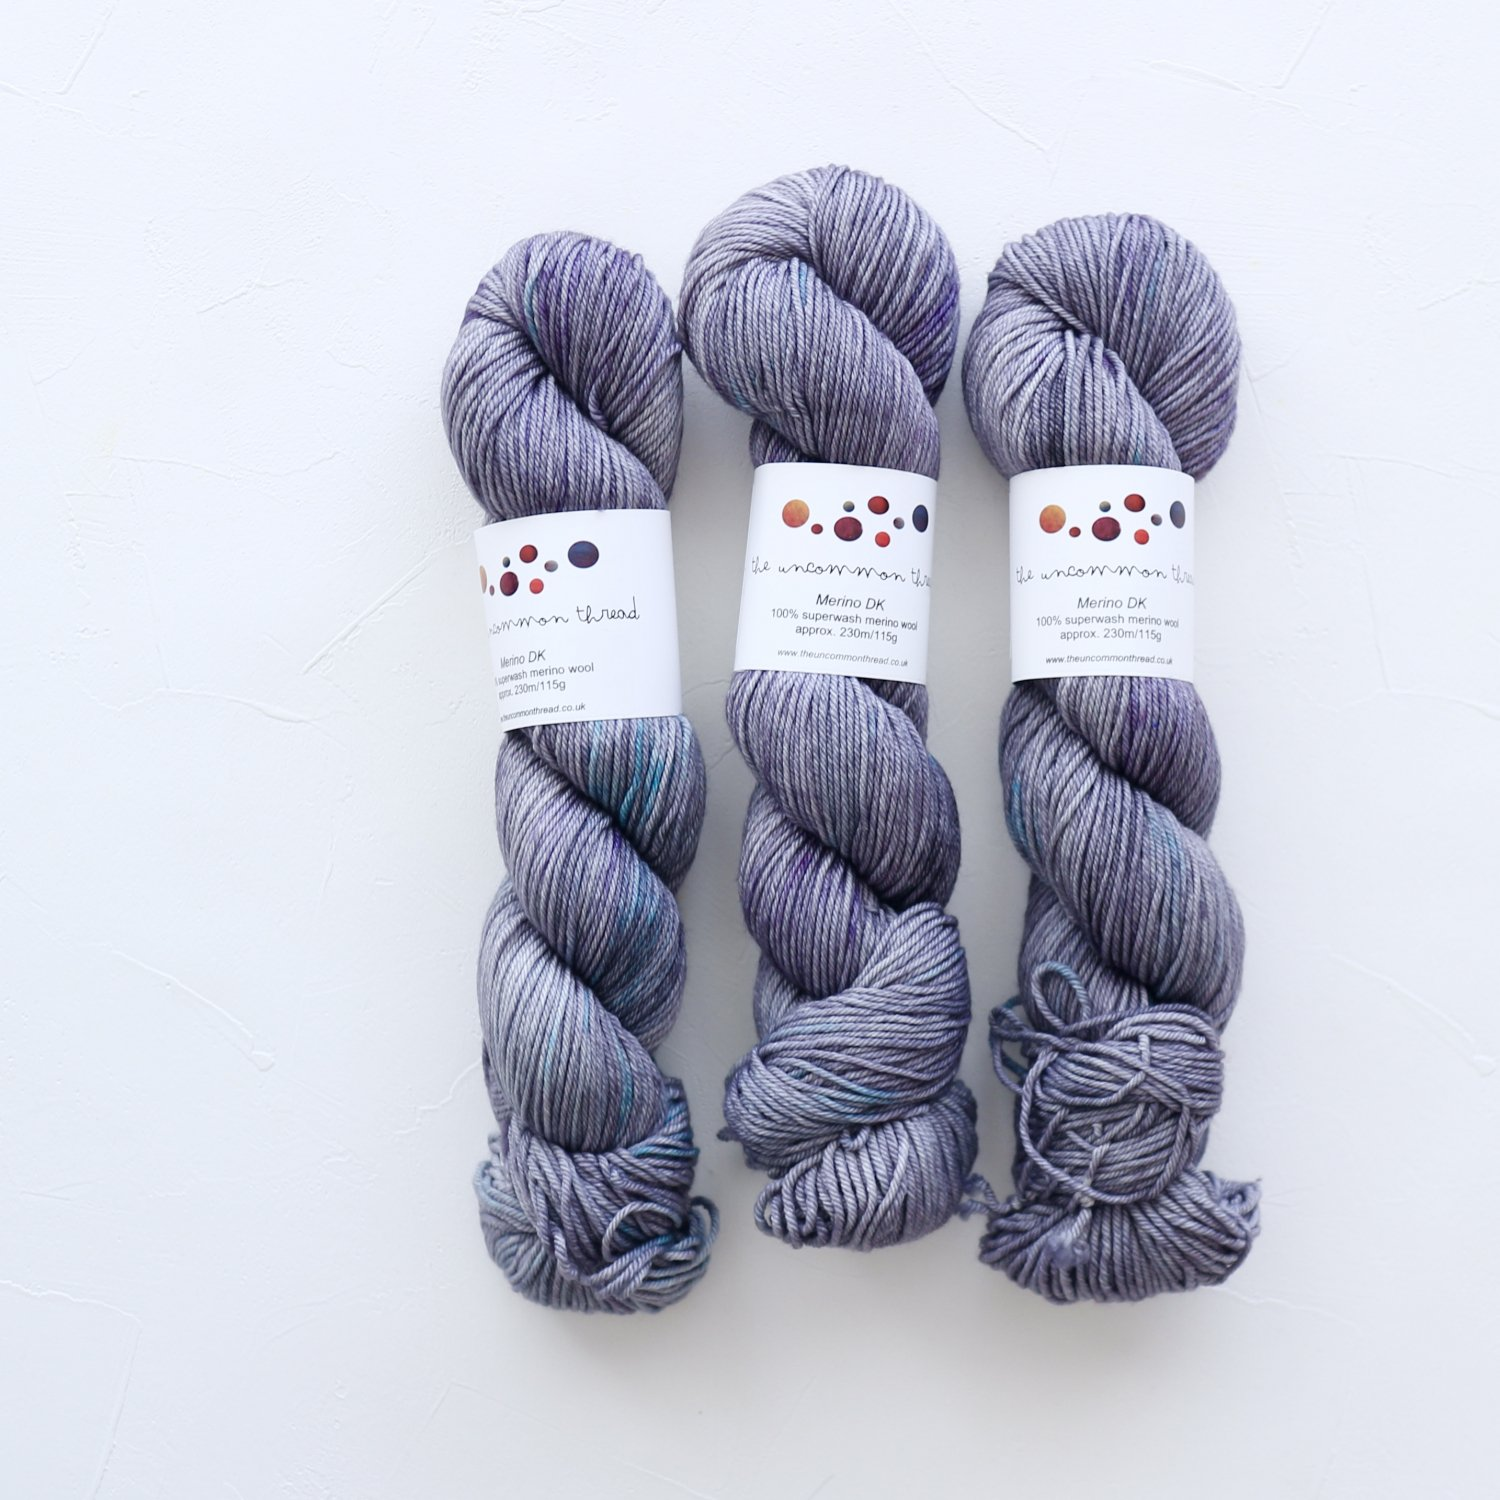 【The Uncommon Thread】<br>Merino DK<br>London Mist